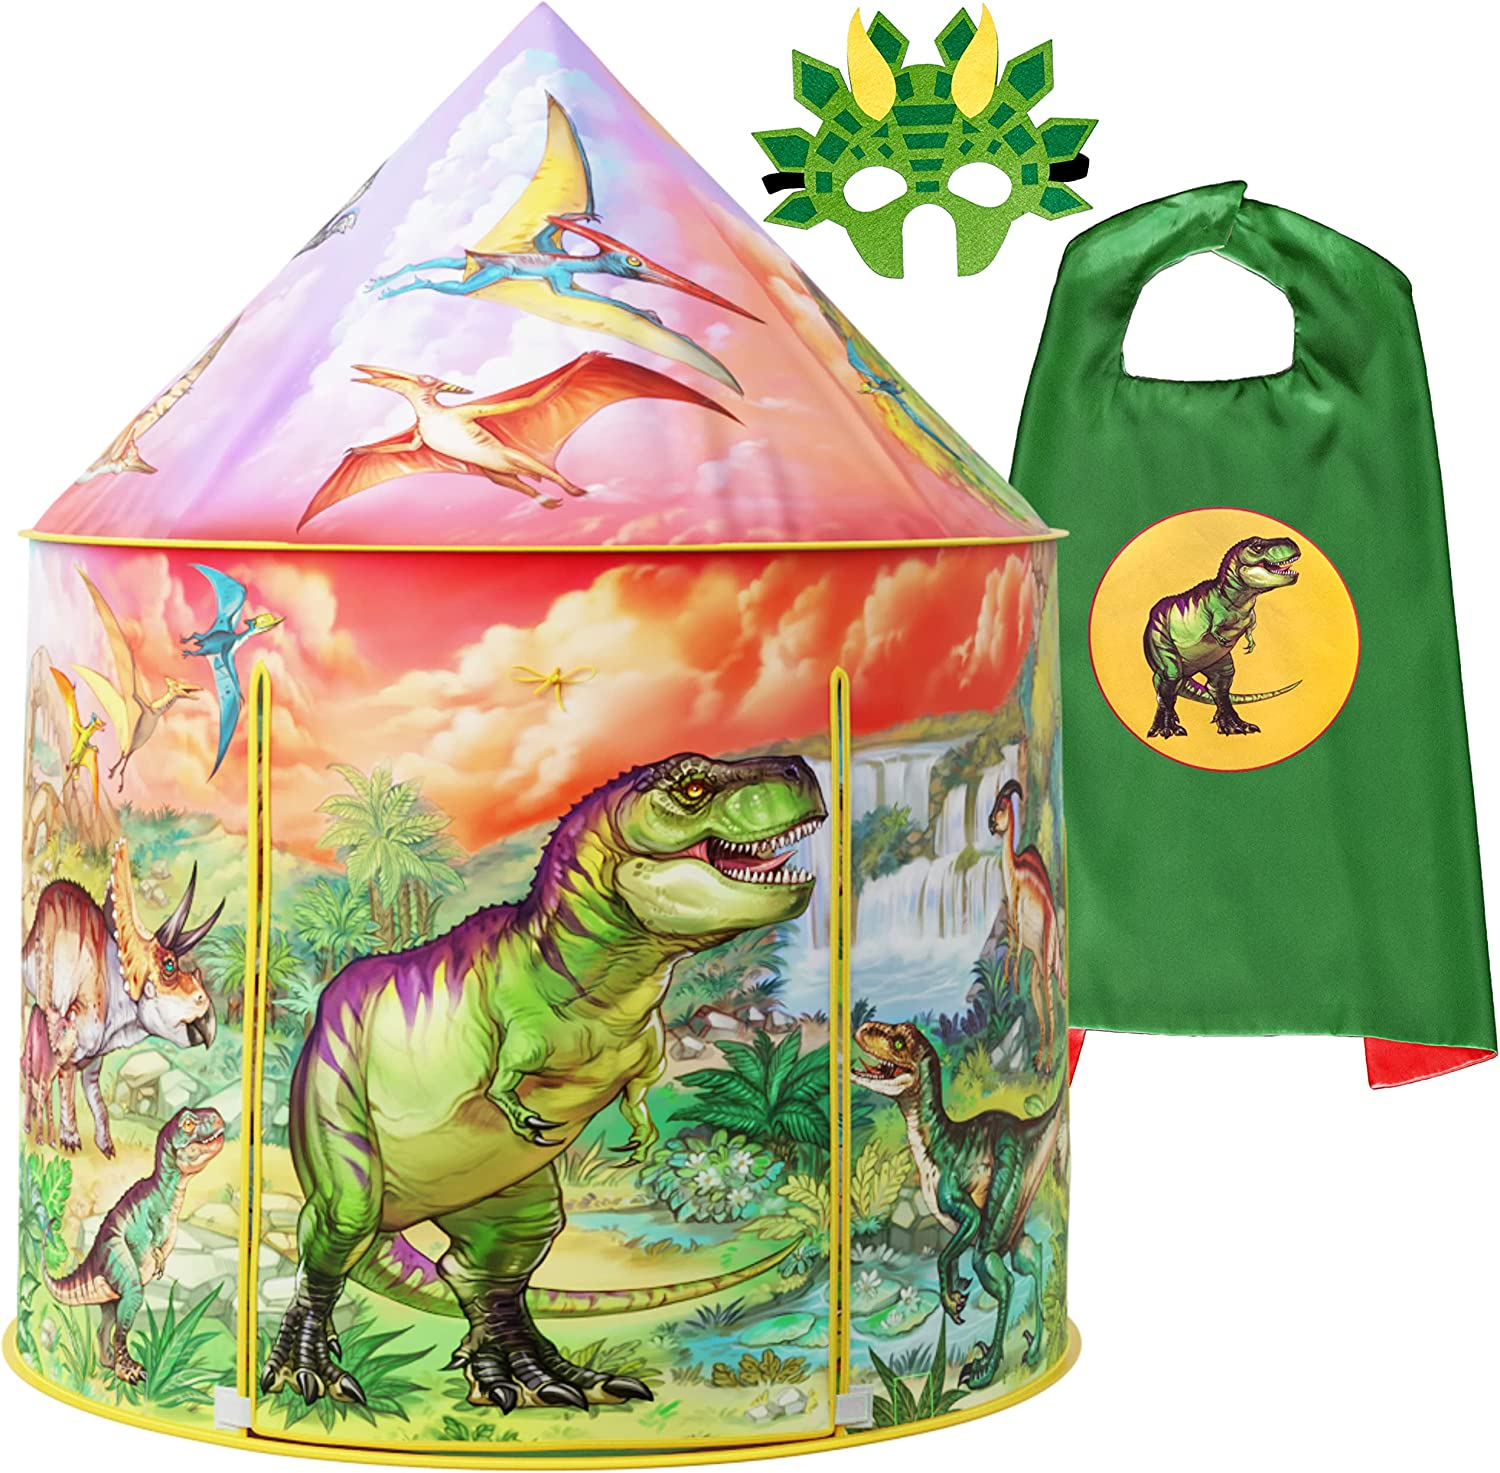 Dinosaur Play Tent Sale item Playhouse for Boys Dino Excellence with Mask and Girls